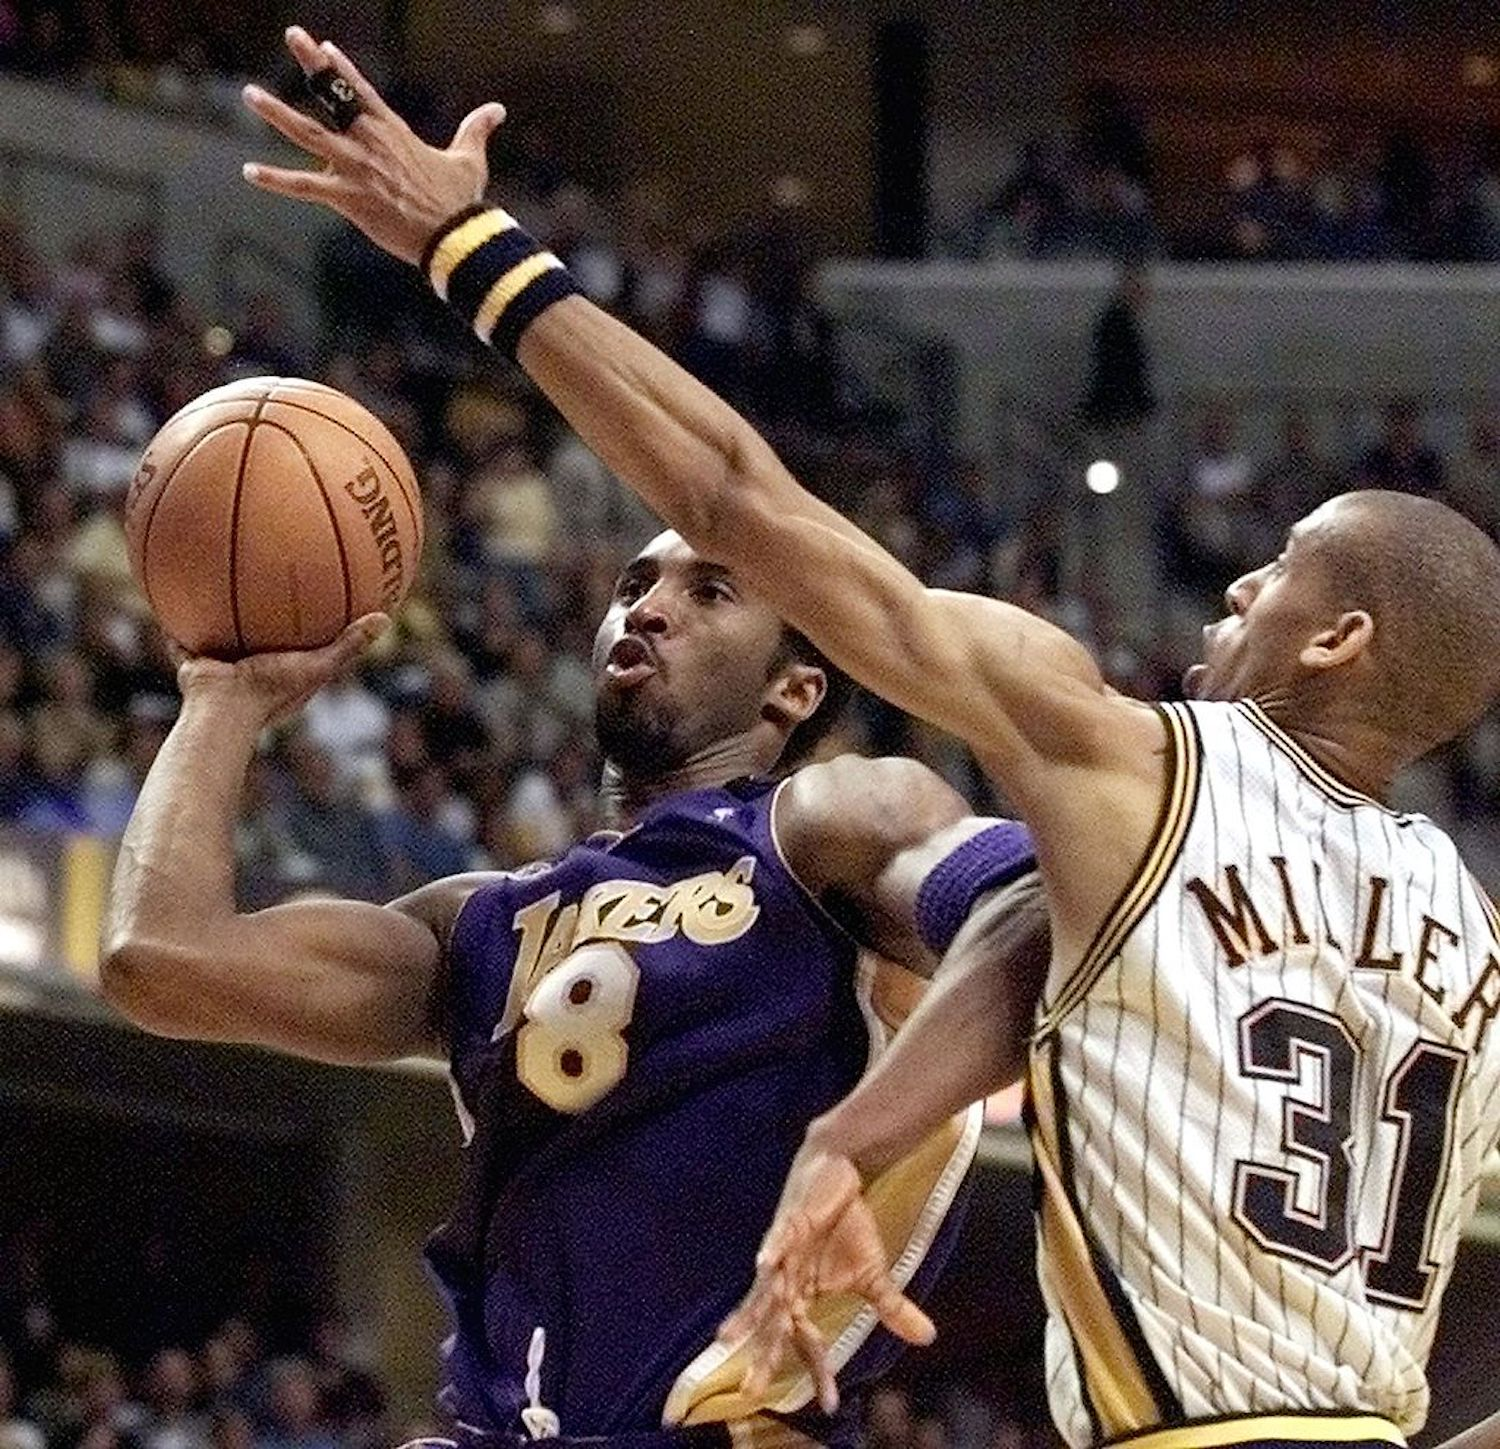 Kobe Bryant and Reggie Miller are the ultimate competitors, but one time they took it too far and threw fists on the court after the buzzer.